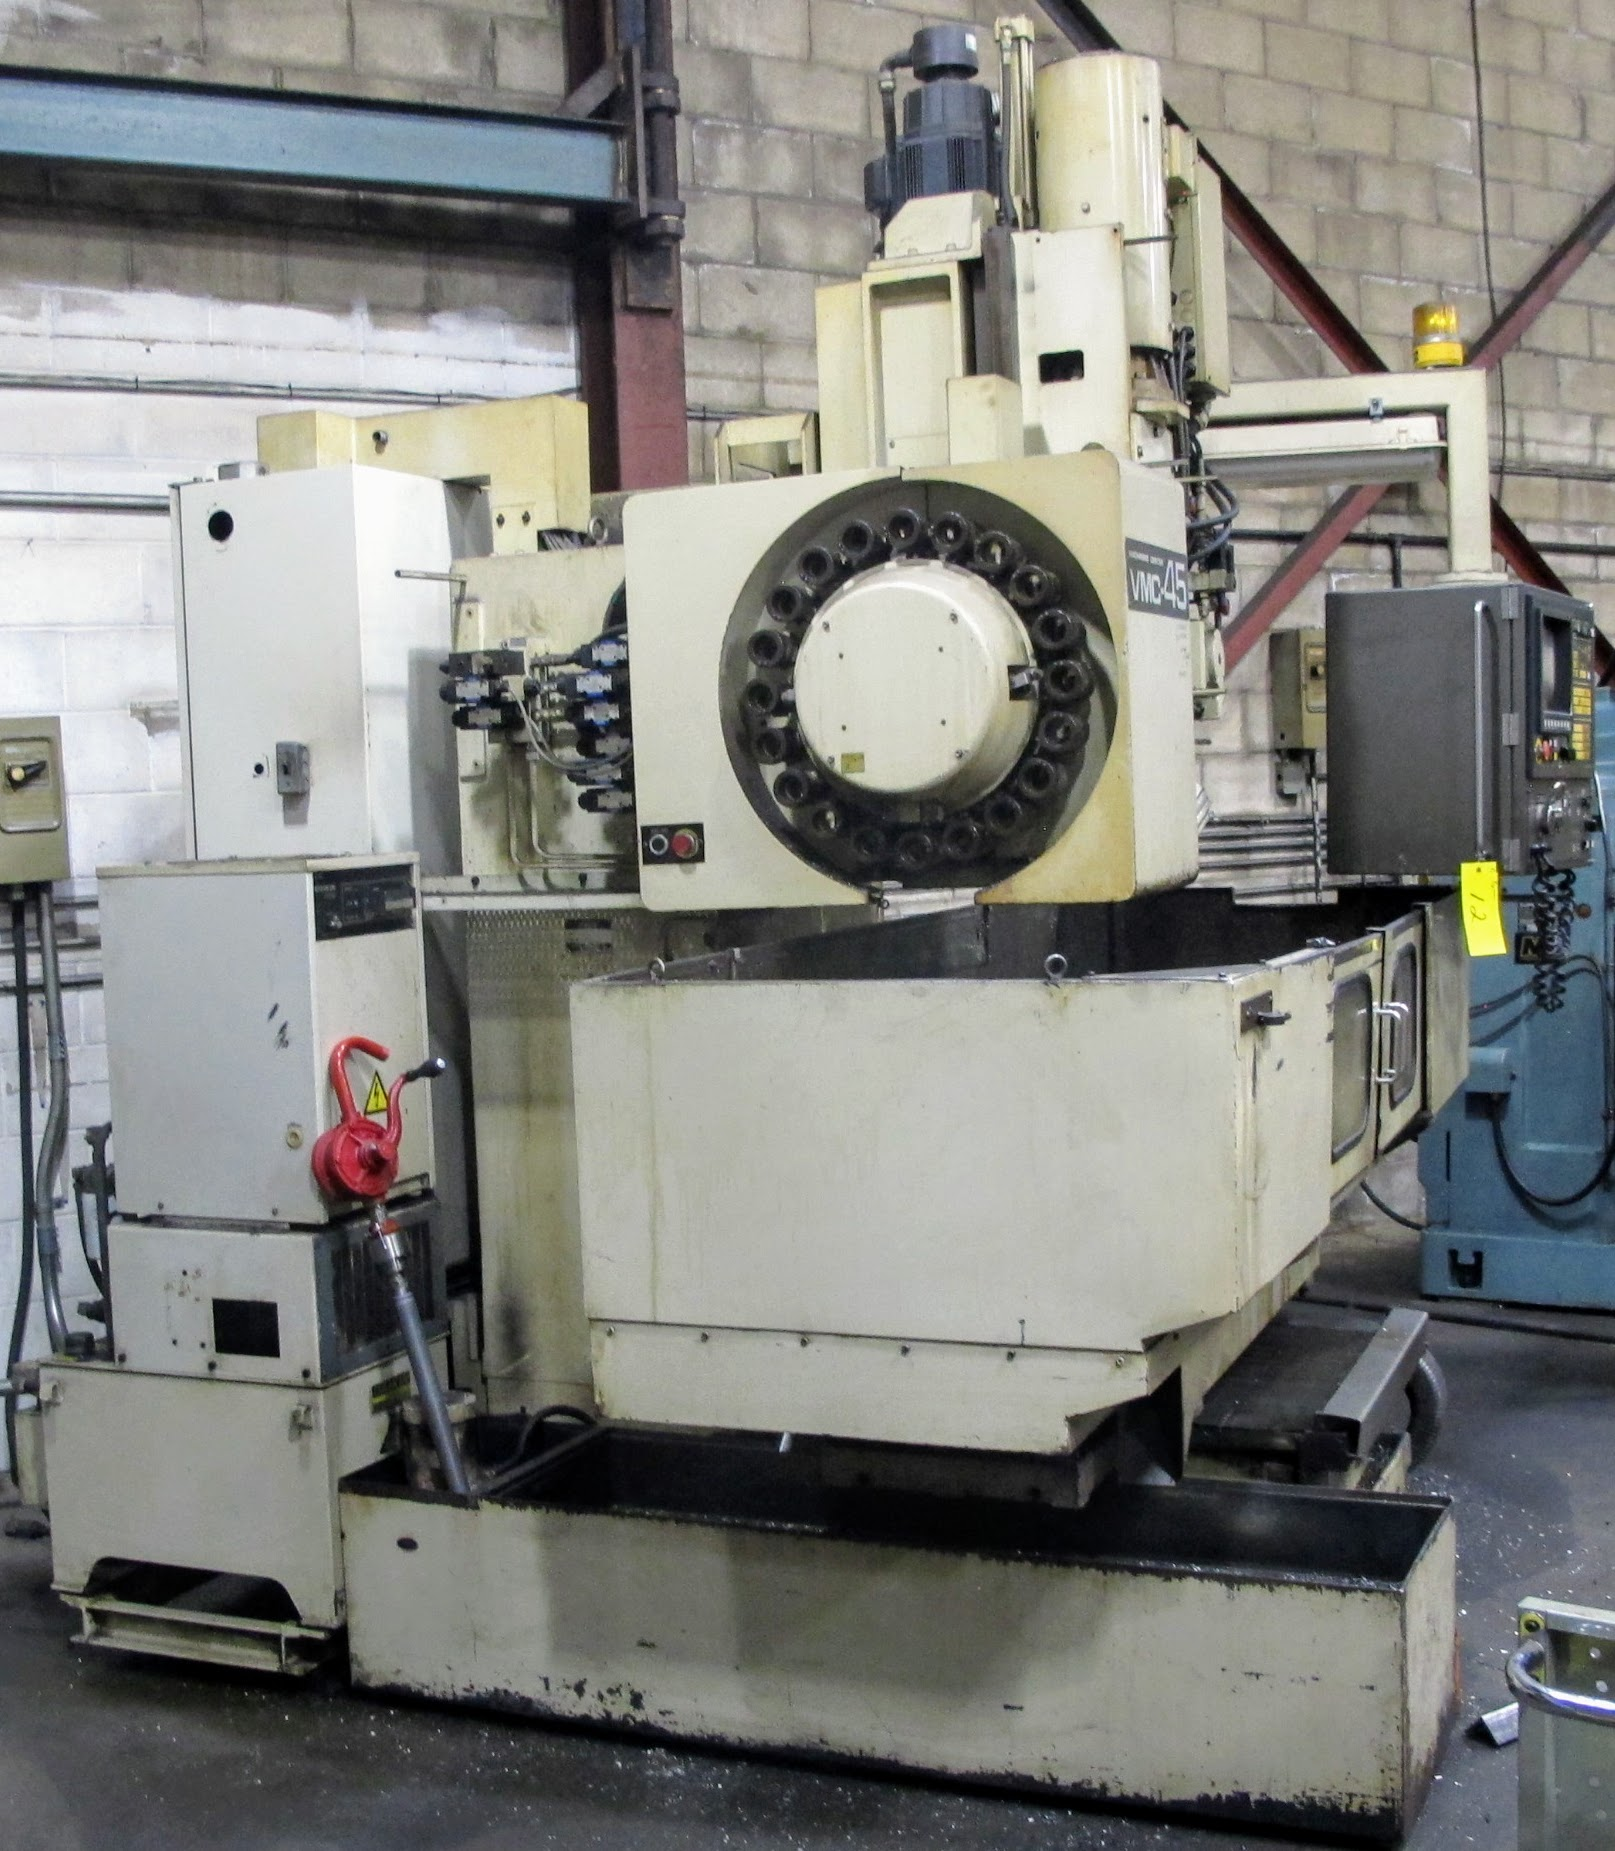 "SHIBAURA VMC-45 CNC VERTICAL MACHINING CENTER, 18"" X 40"" TABLE, TOSNUC CNC CONTROLS, 20 ATC, COOLING - Image 4 of 5"